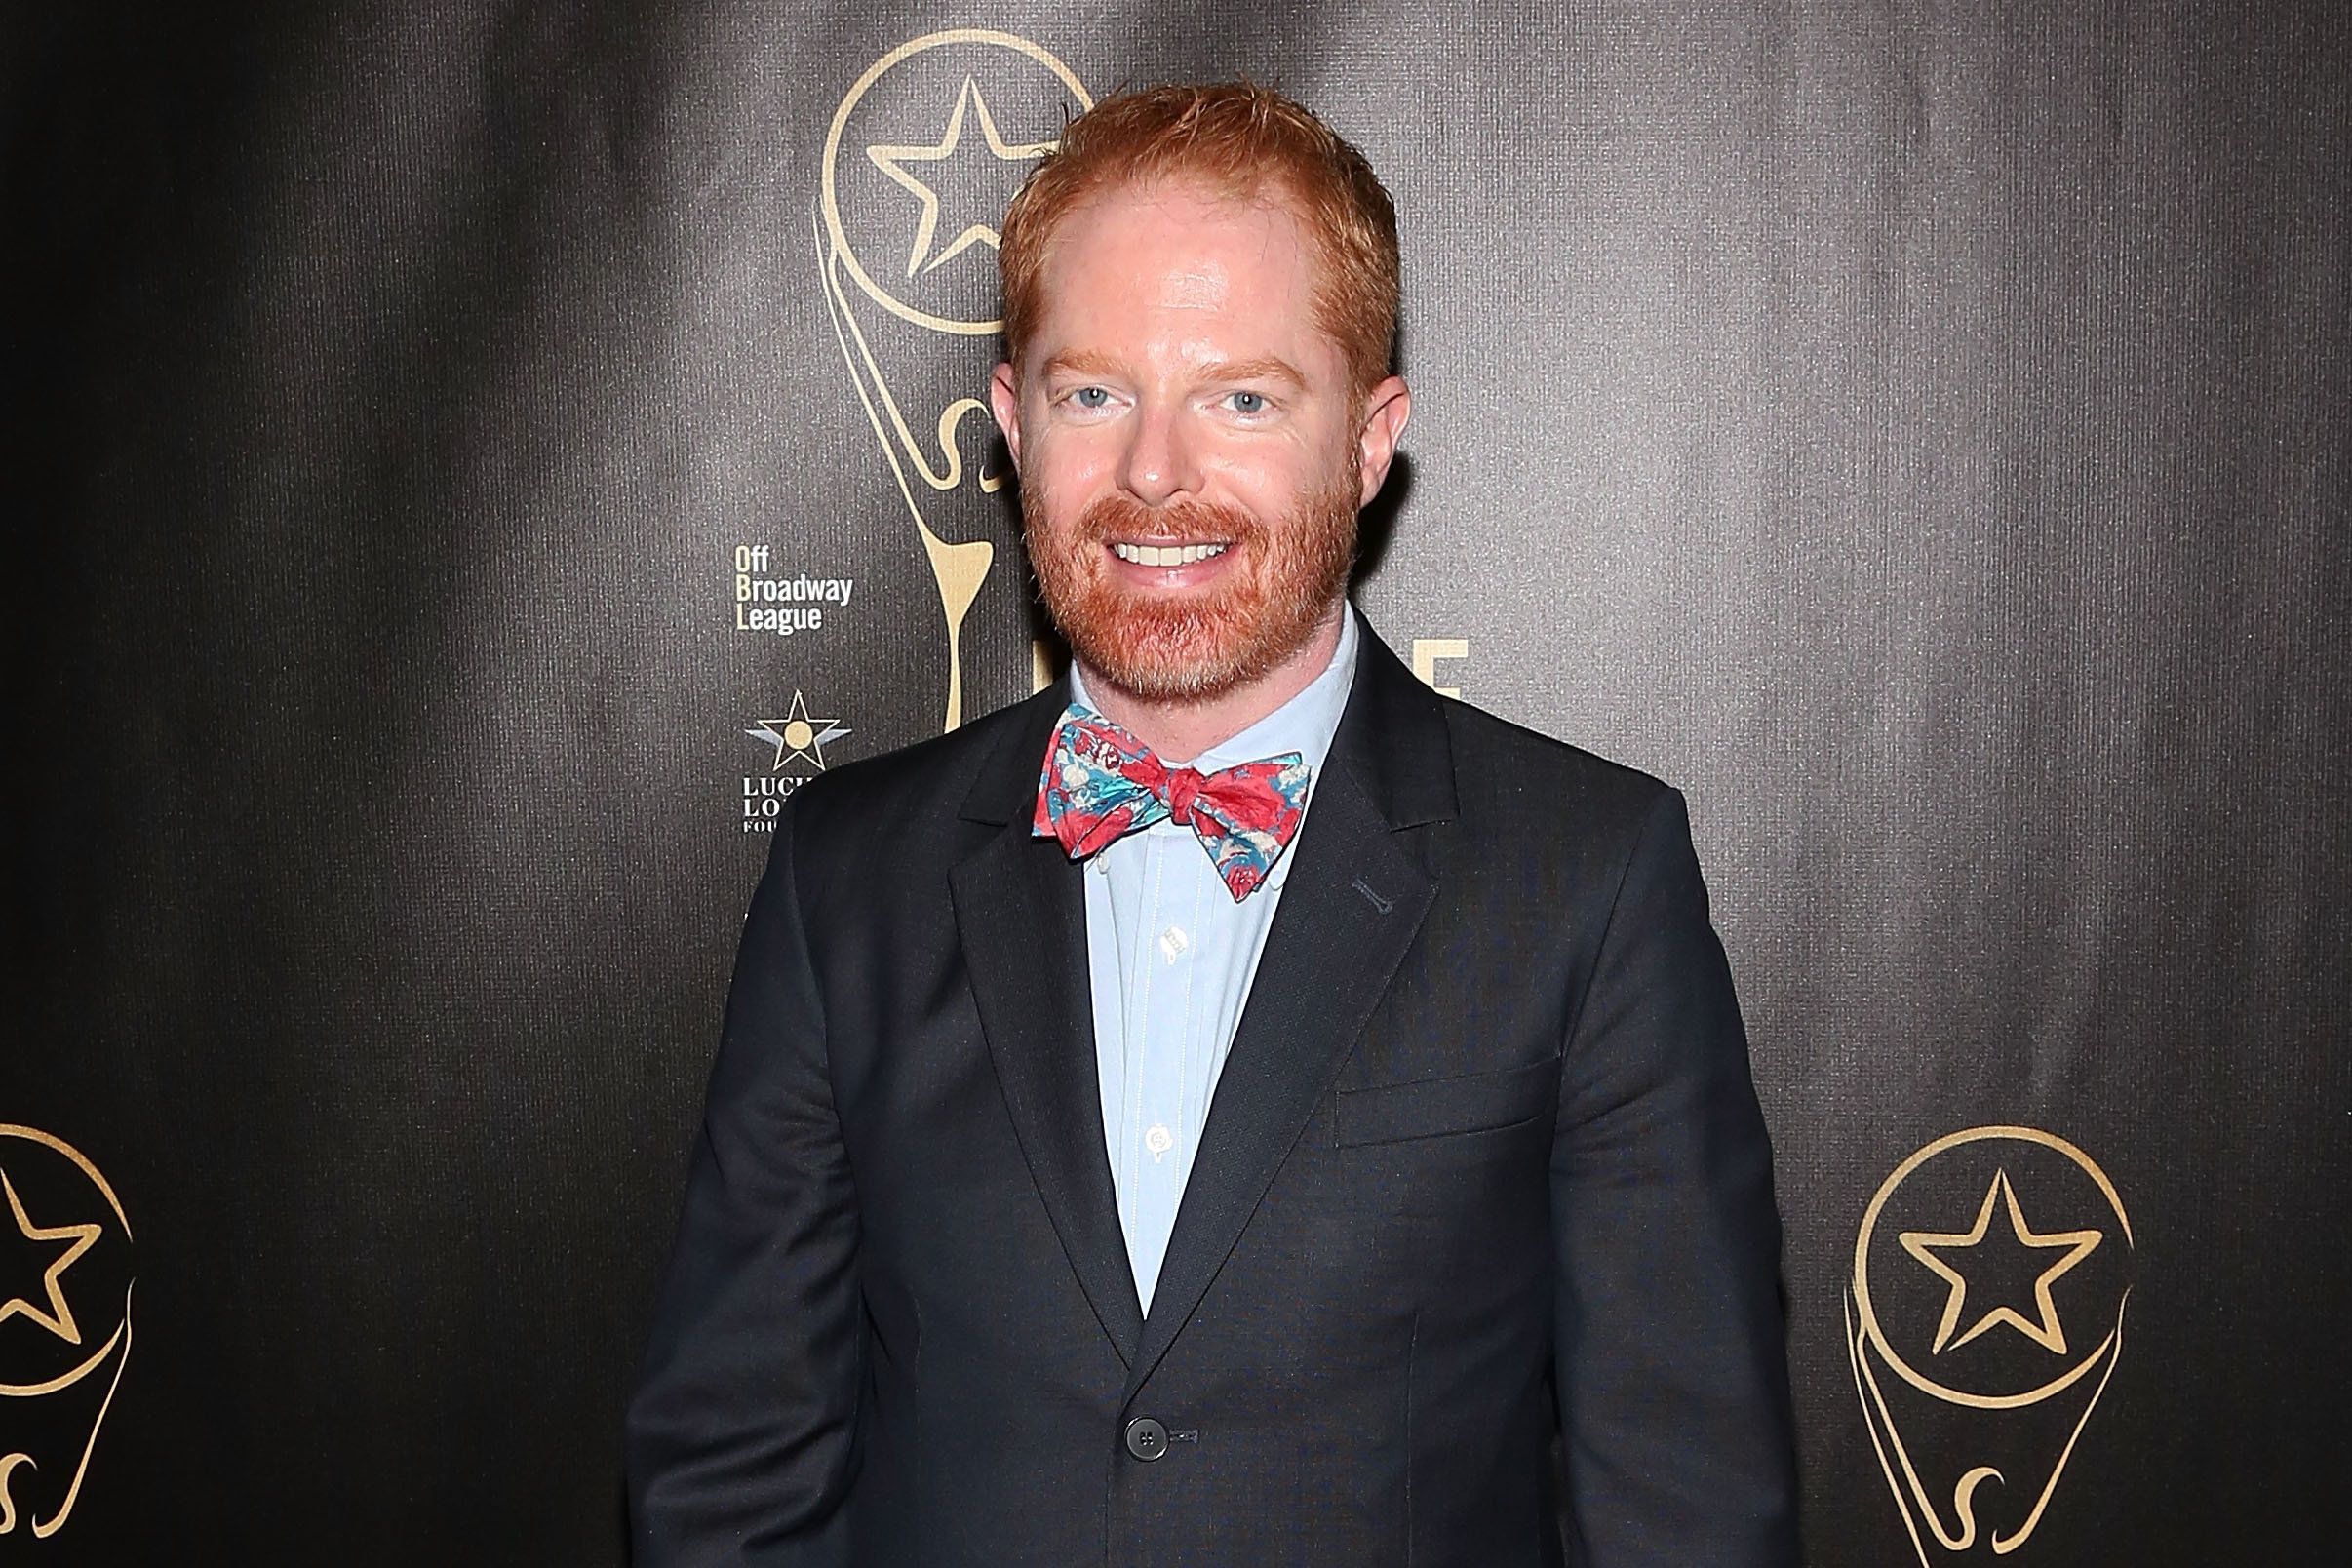 NEW YORK, NY - MAY 10:  Jesse Tyler Ferguson attends the 2015 Lucille Lortel Awards at NYU Skirball Center on May 10, 2015 in New York City.  (Photo by Taylor Hill/Getty Images)